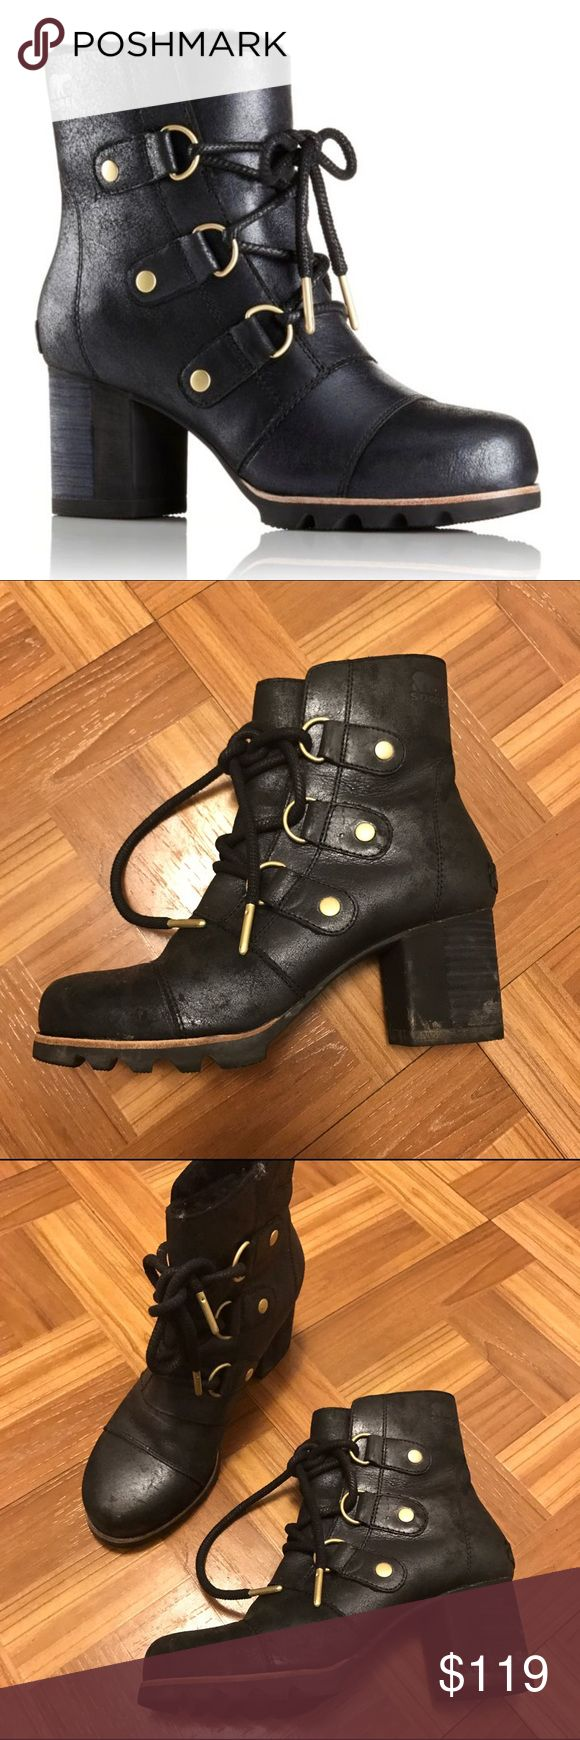 SOREL ADDINGTON lace holiday black boot sz 6 $275 For sale is a pair of Sorel 'addington' lace up boots in size 6. I wore them only a couple of times but the images show the wear. I'd say they are a B+\a- and would be easy to clean up on the heels where needed. Retail is $275.                 Features: full-grain waterproof leather with a subtle metallic sheen, lined with curly fleece, and finished with sandblasted bronze hardware.       Shaft Height: 5 1/2 in. Heel Height: 2 3/4 in…